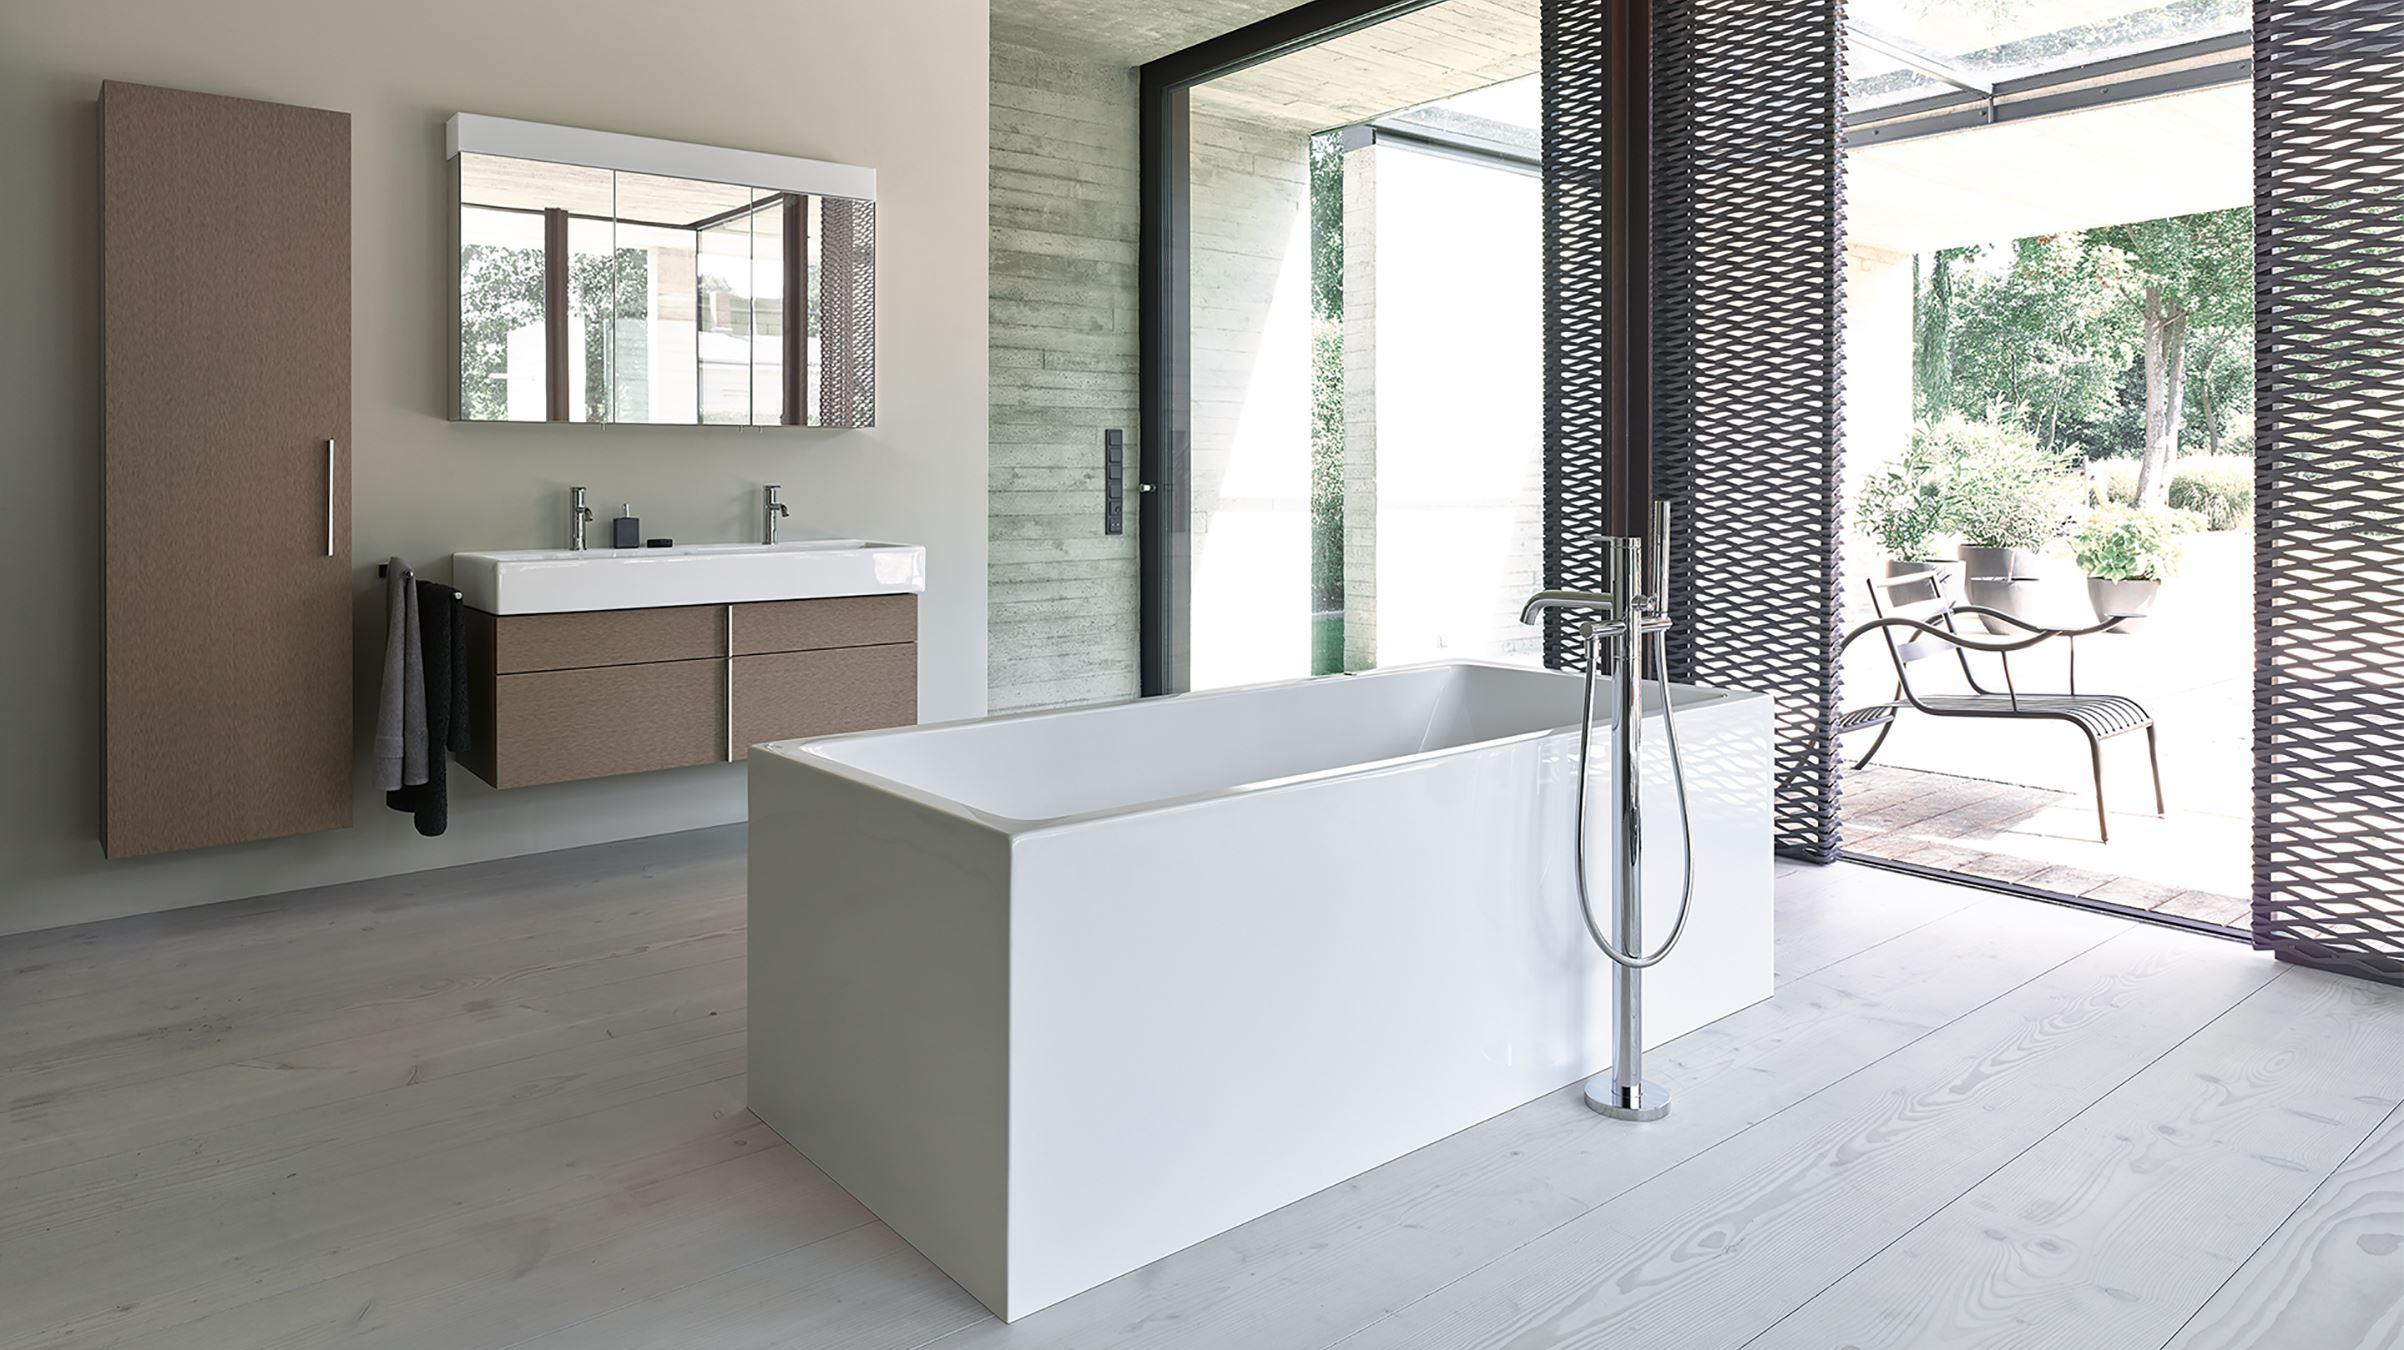 C1-by-Kurt-Merki-Jr_Duravit_09.jpg